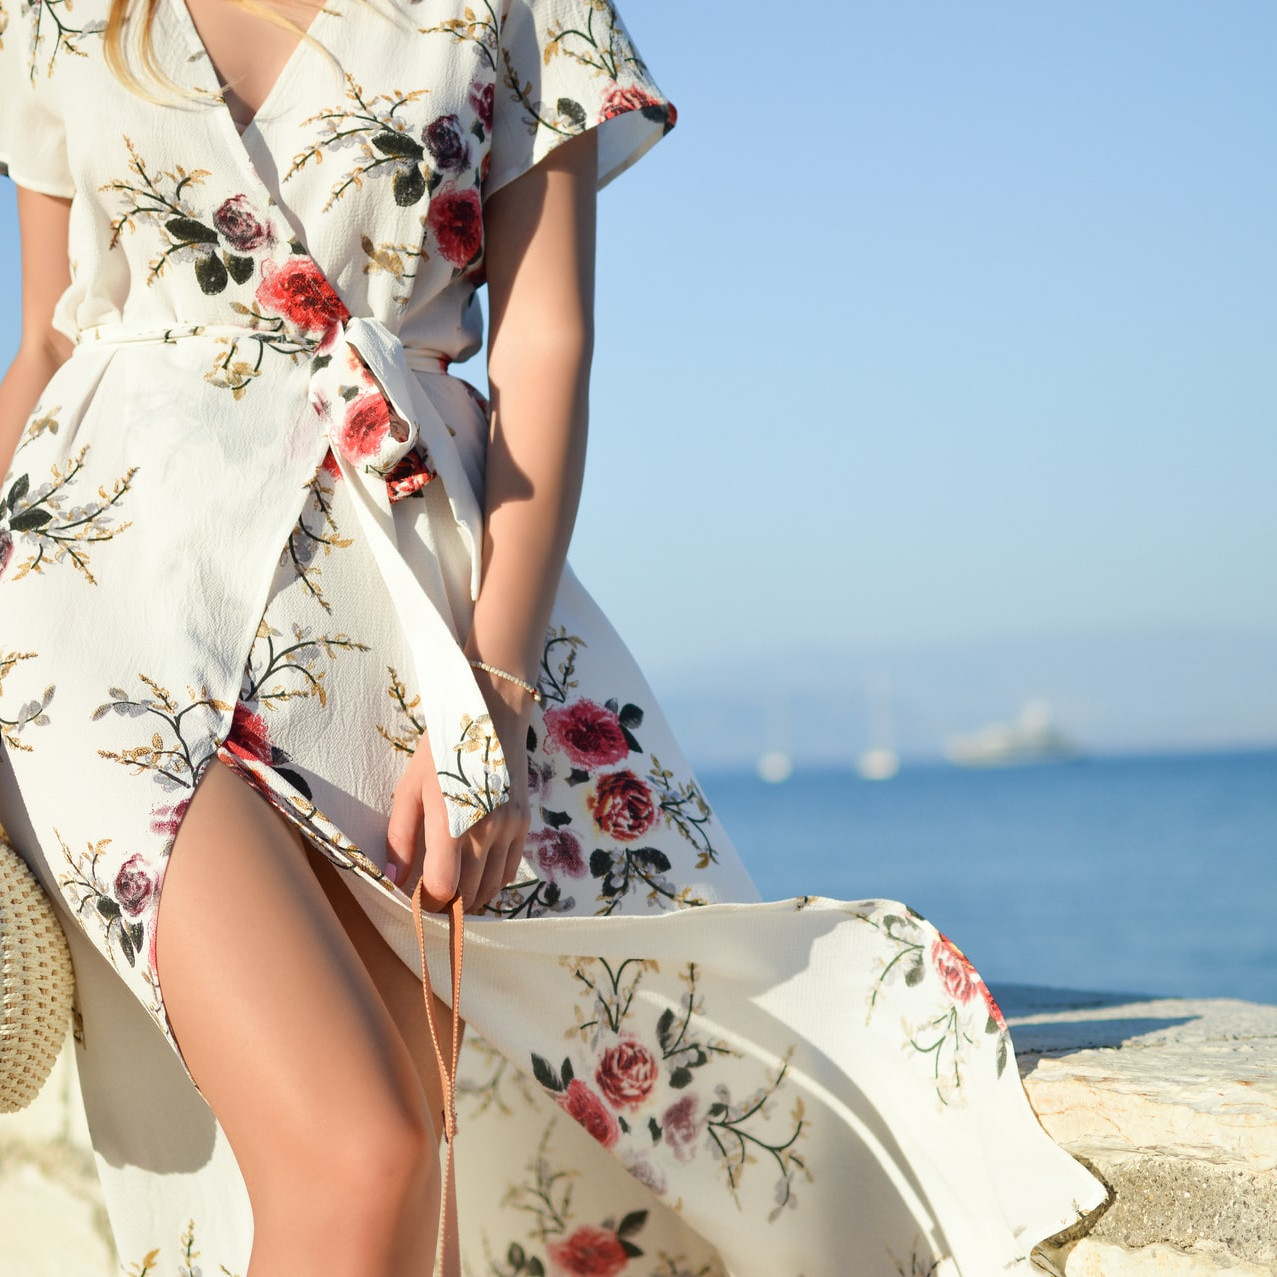 woman on the beach in a flowered dress